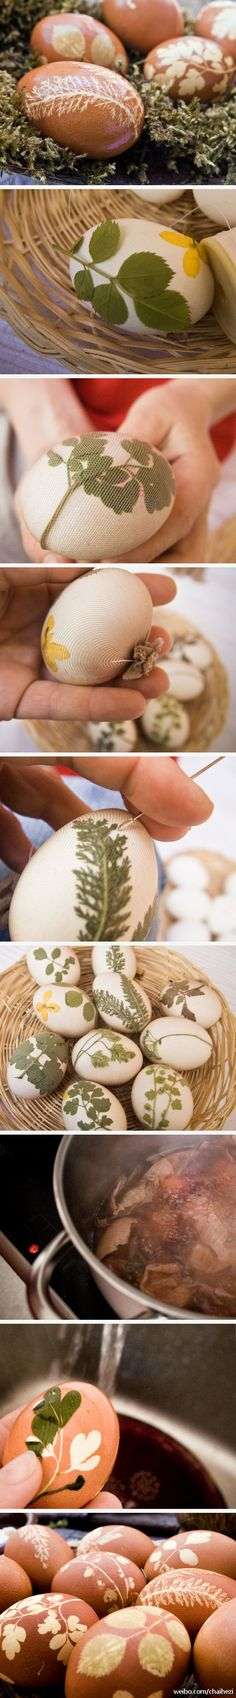 tea stained eggs